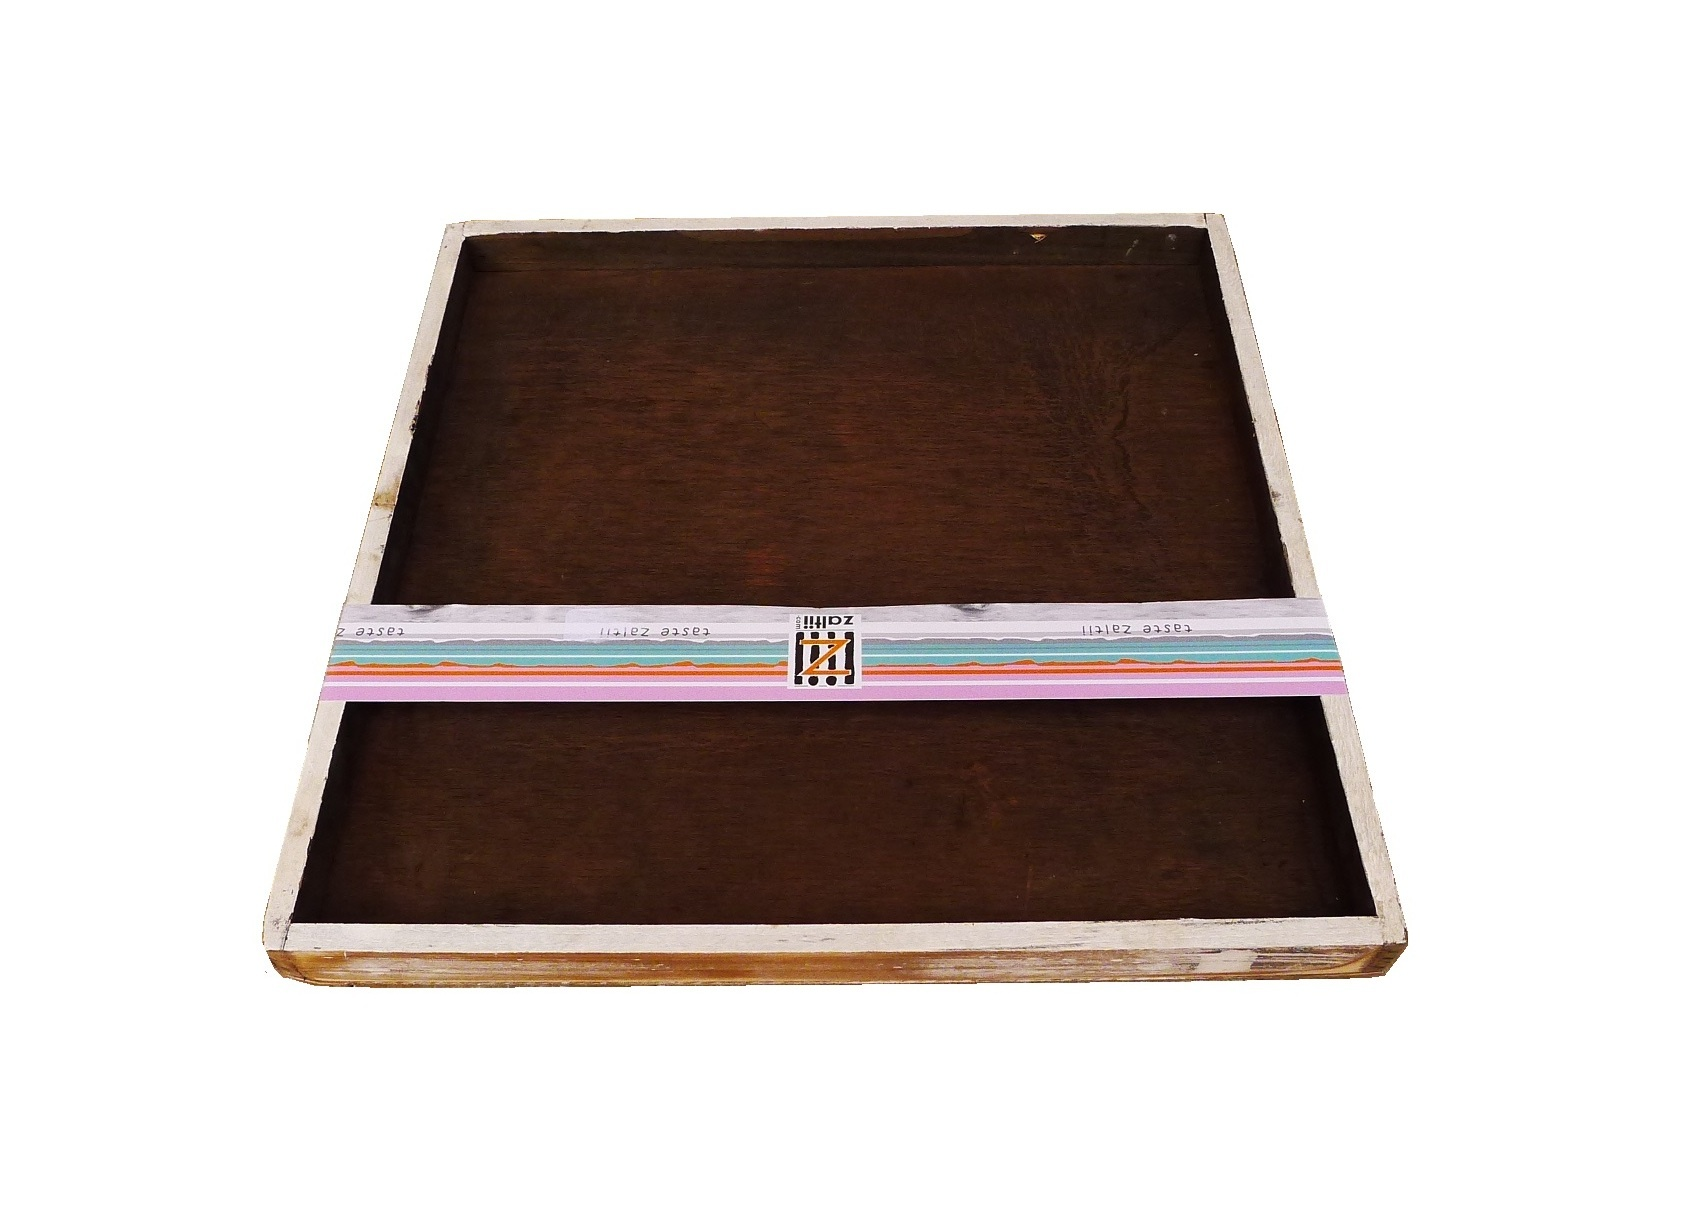 tray brussels brown jessica ciocco 47-1